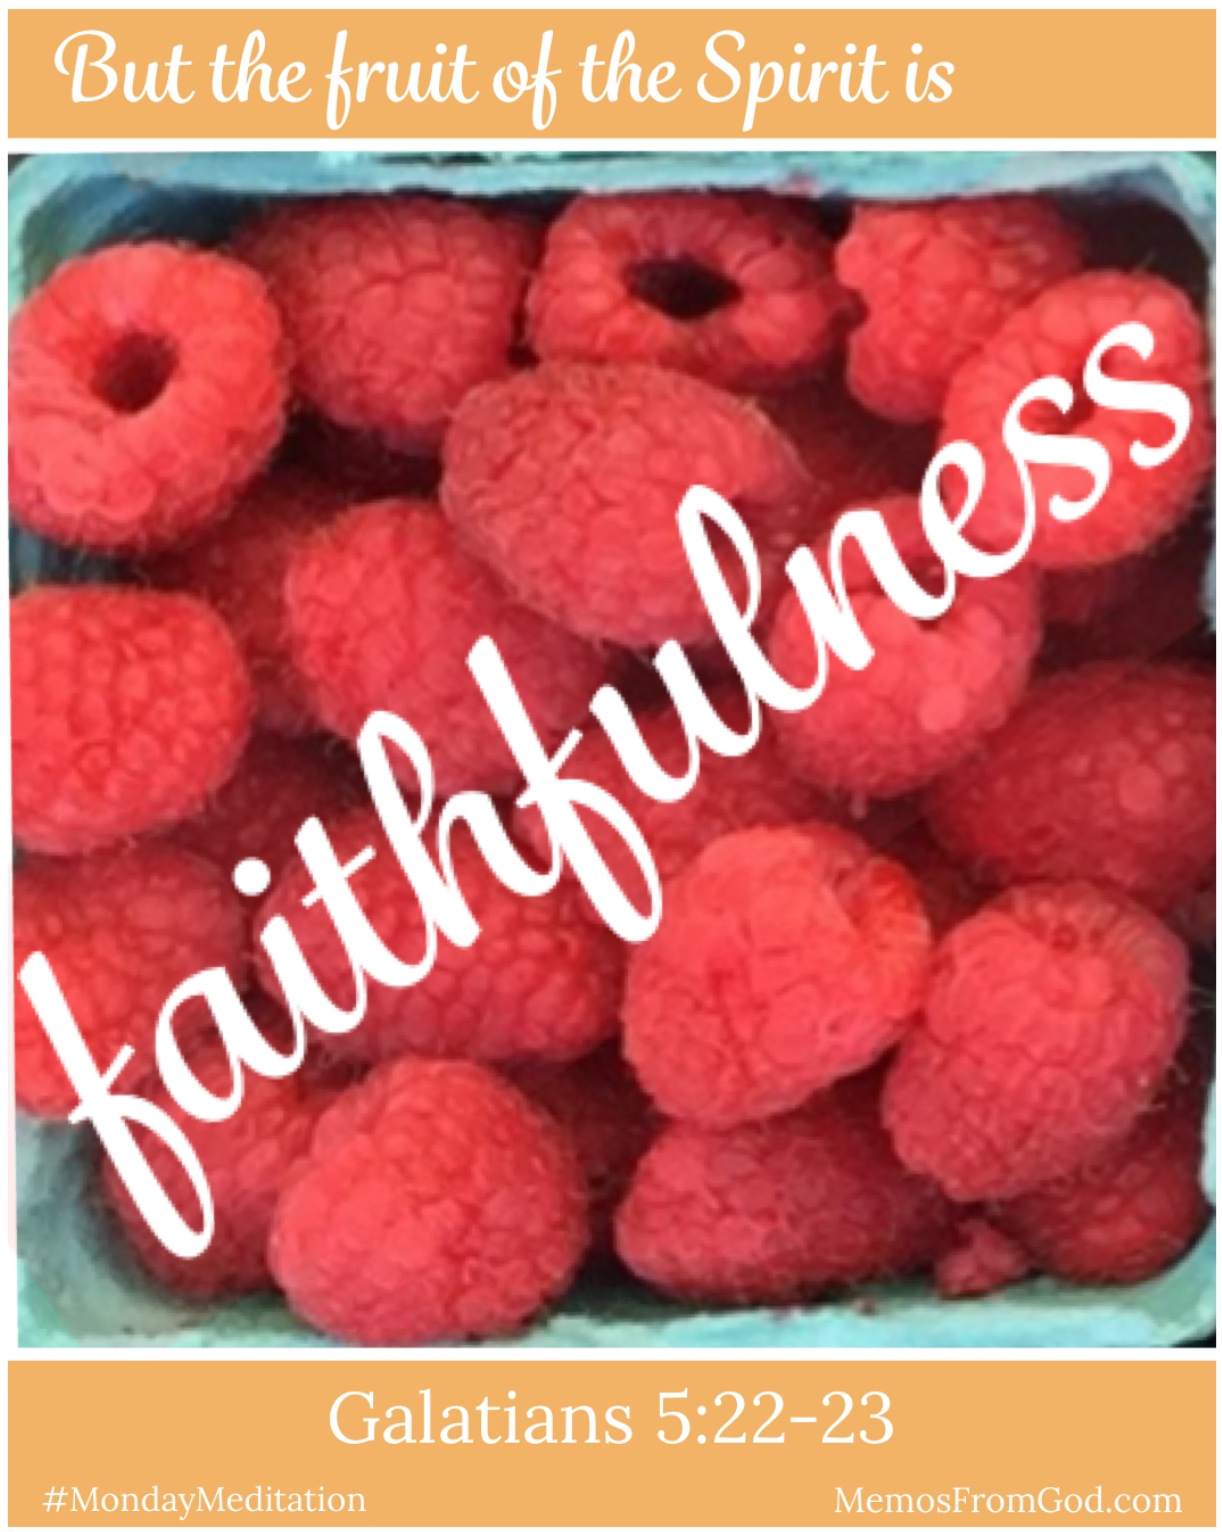 The top view of a pint box of red raspberries. Caption: But the fruit of the Spirit is faithfulness. Galatians 5:22-23